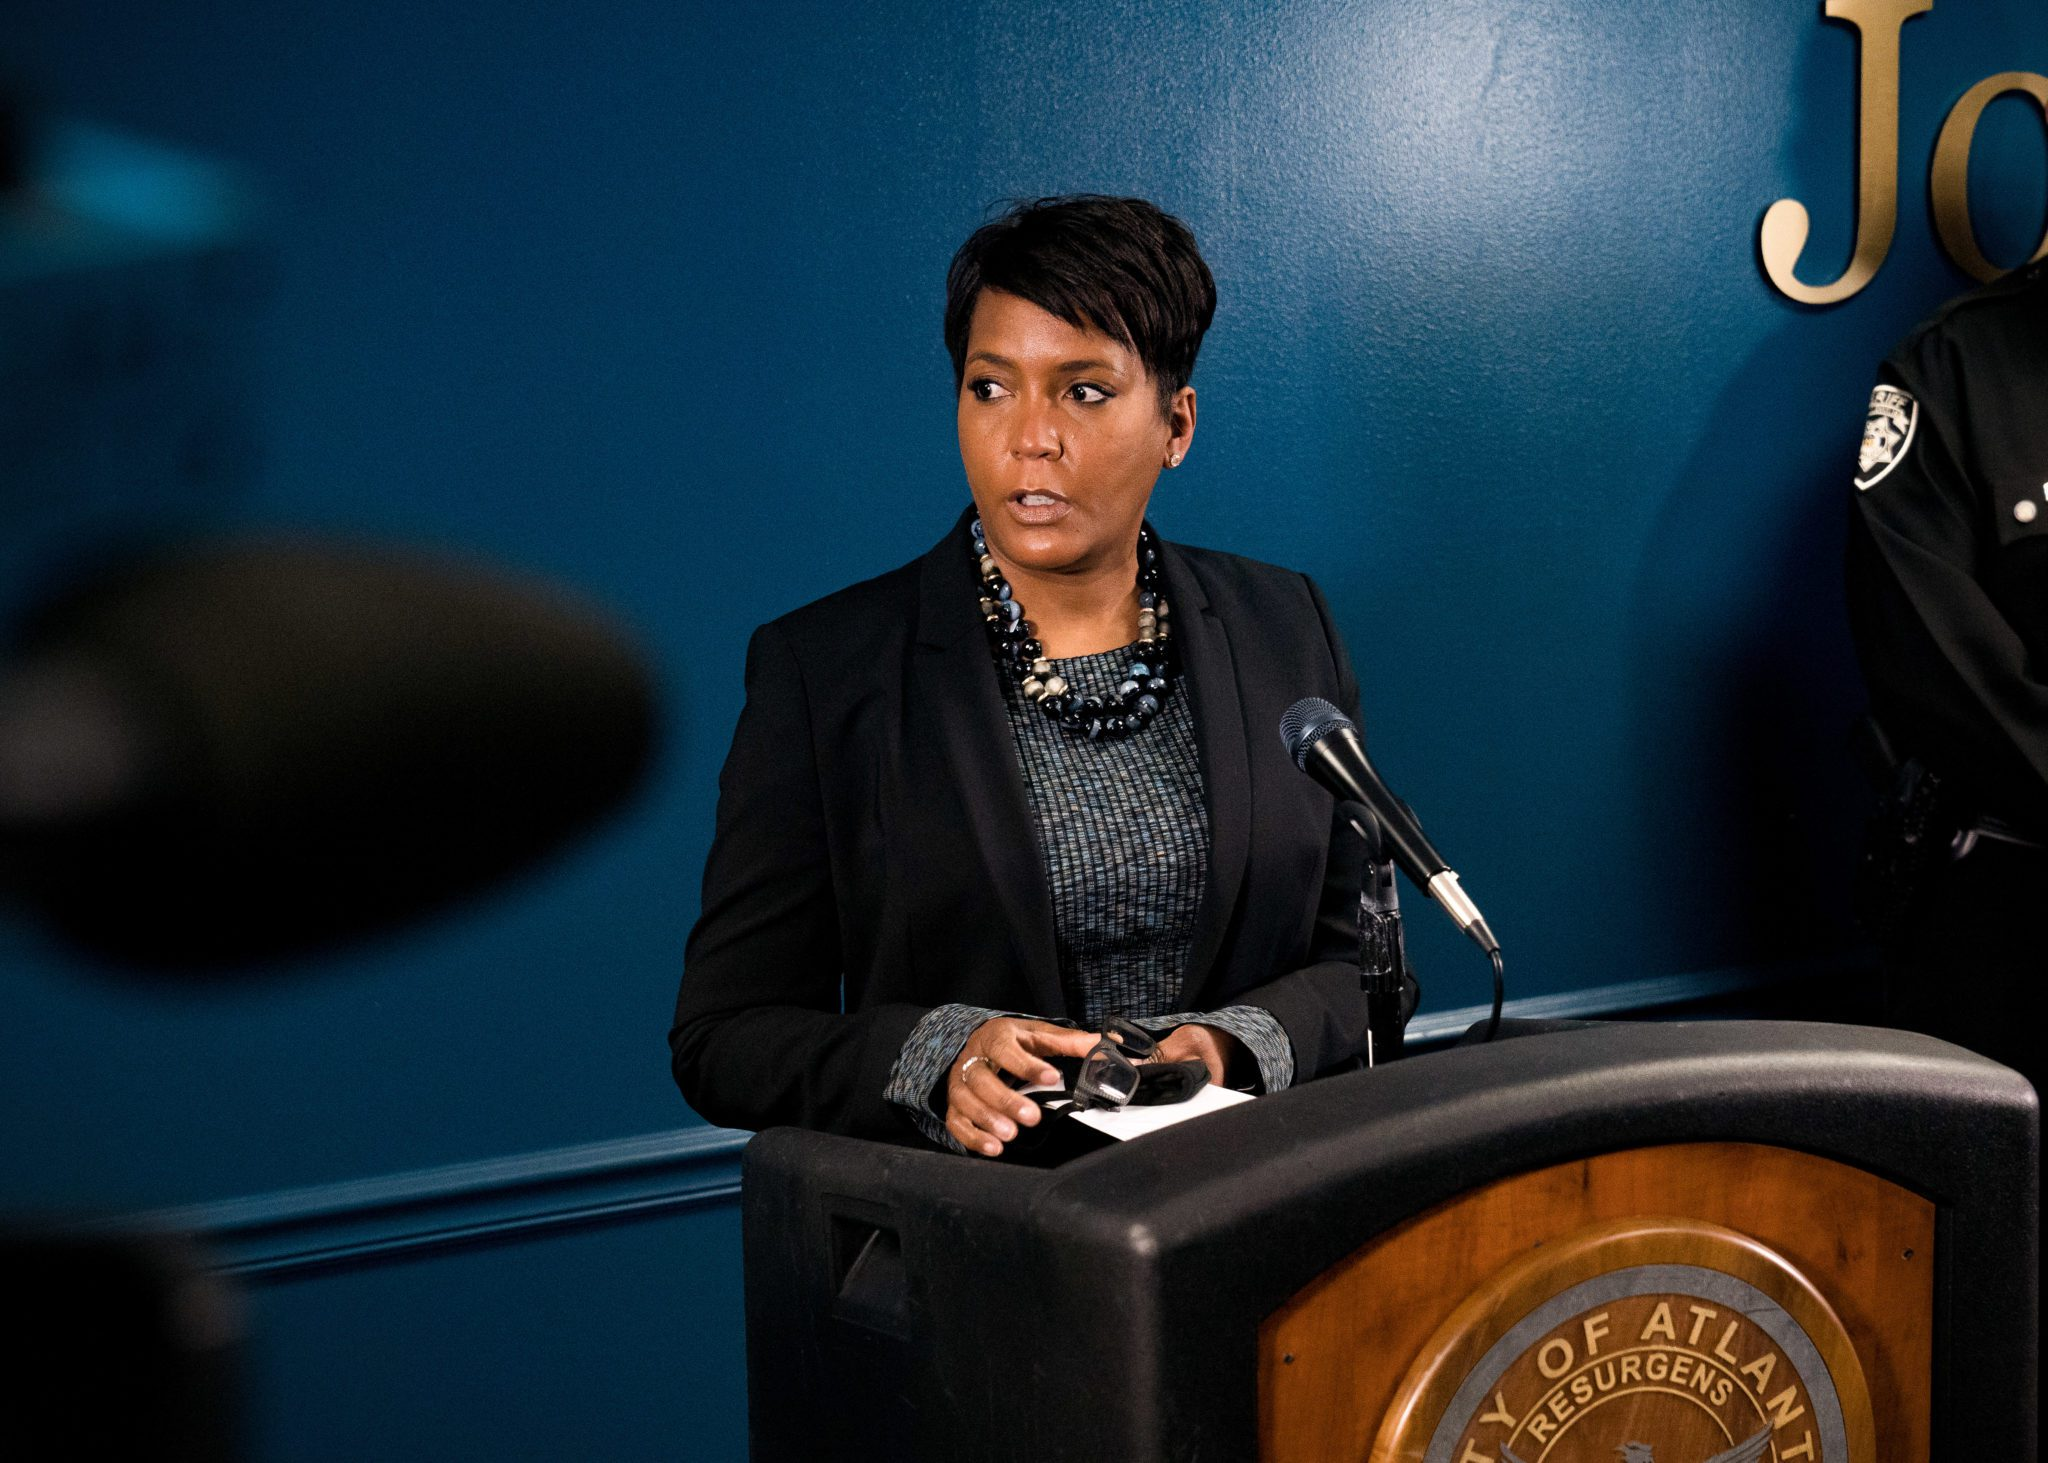 ATLANTA, GA - MARCH 17: Mayor Keisha Lance Bottoms speaks during a press conference on March 17, 2021 in Atlanta, Georgia. Suspect Robert Aaron Long, 21, was arrested after a series of shootings at three Atlanta-area spas left eight people dead on Tuesday night, including six Asian women. (Photo by Megan Varner/Getty Images)